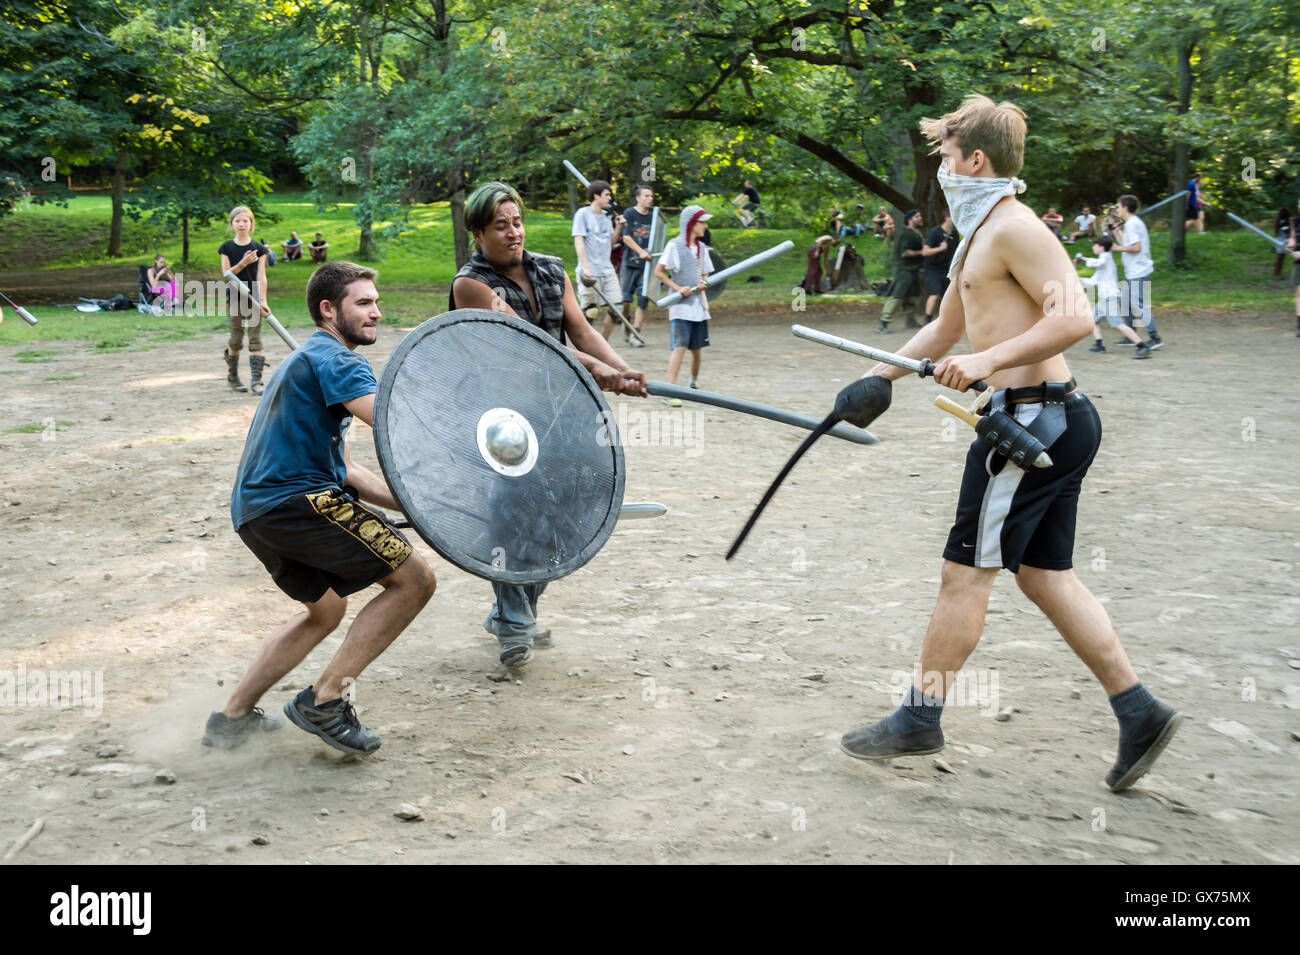 Montreal, CA - 4th September 2016: 'Guerriers de la montagne' in Montreal. Medieval battles in Mont-Royal - Stock Image